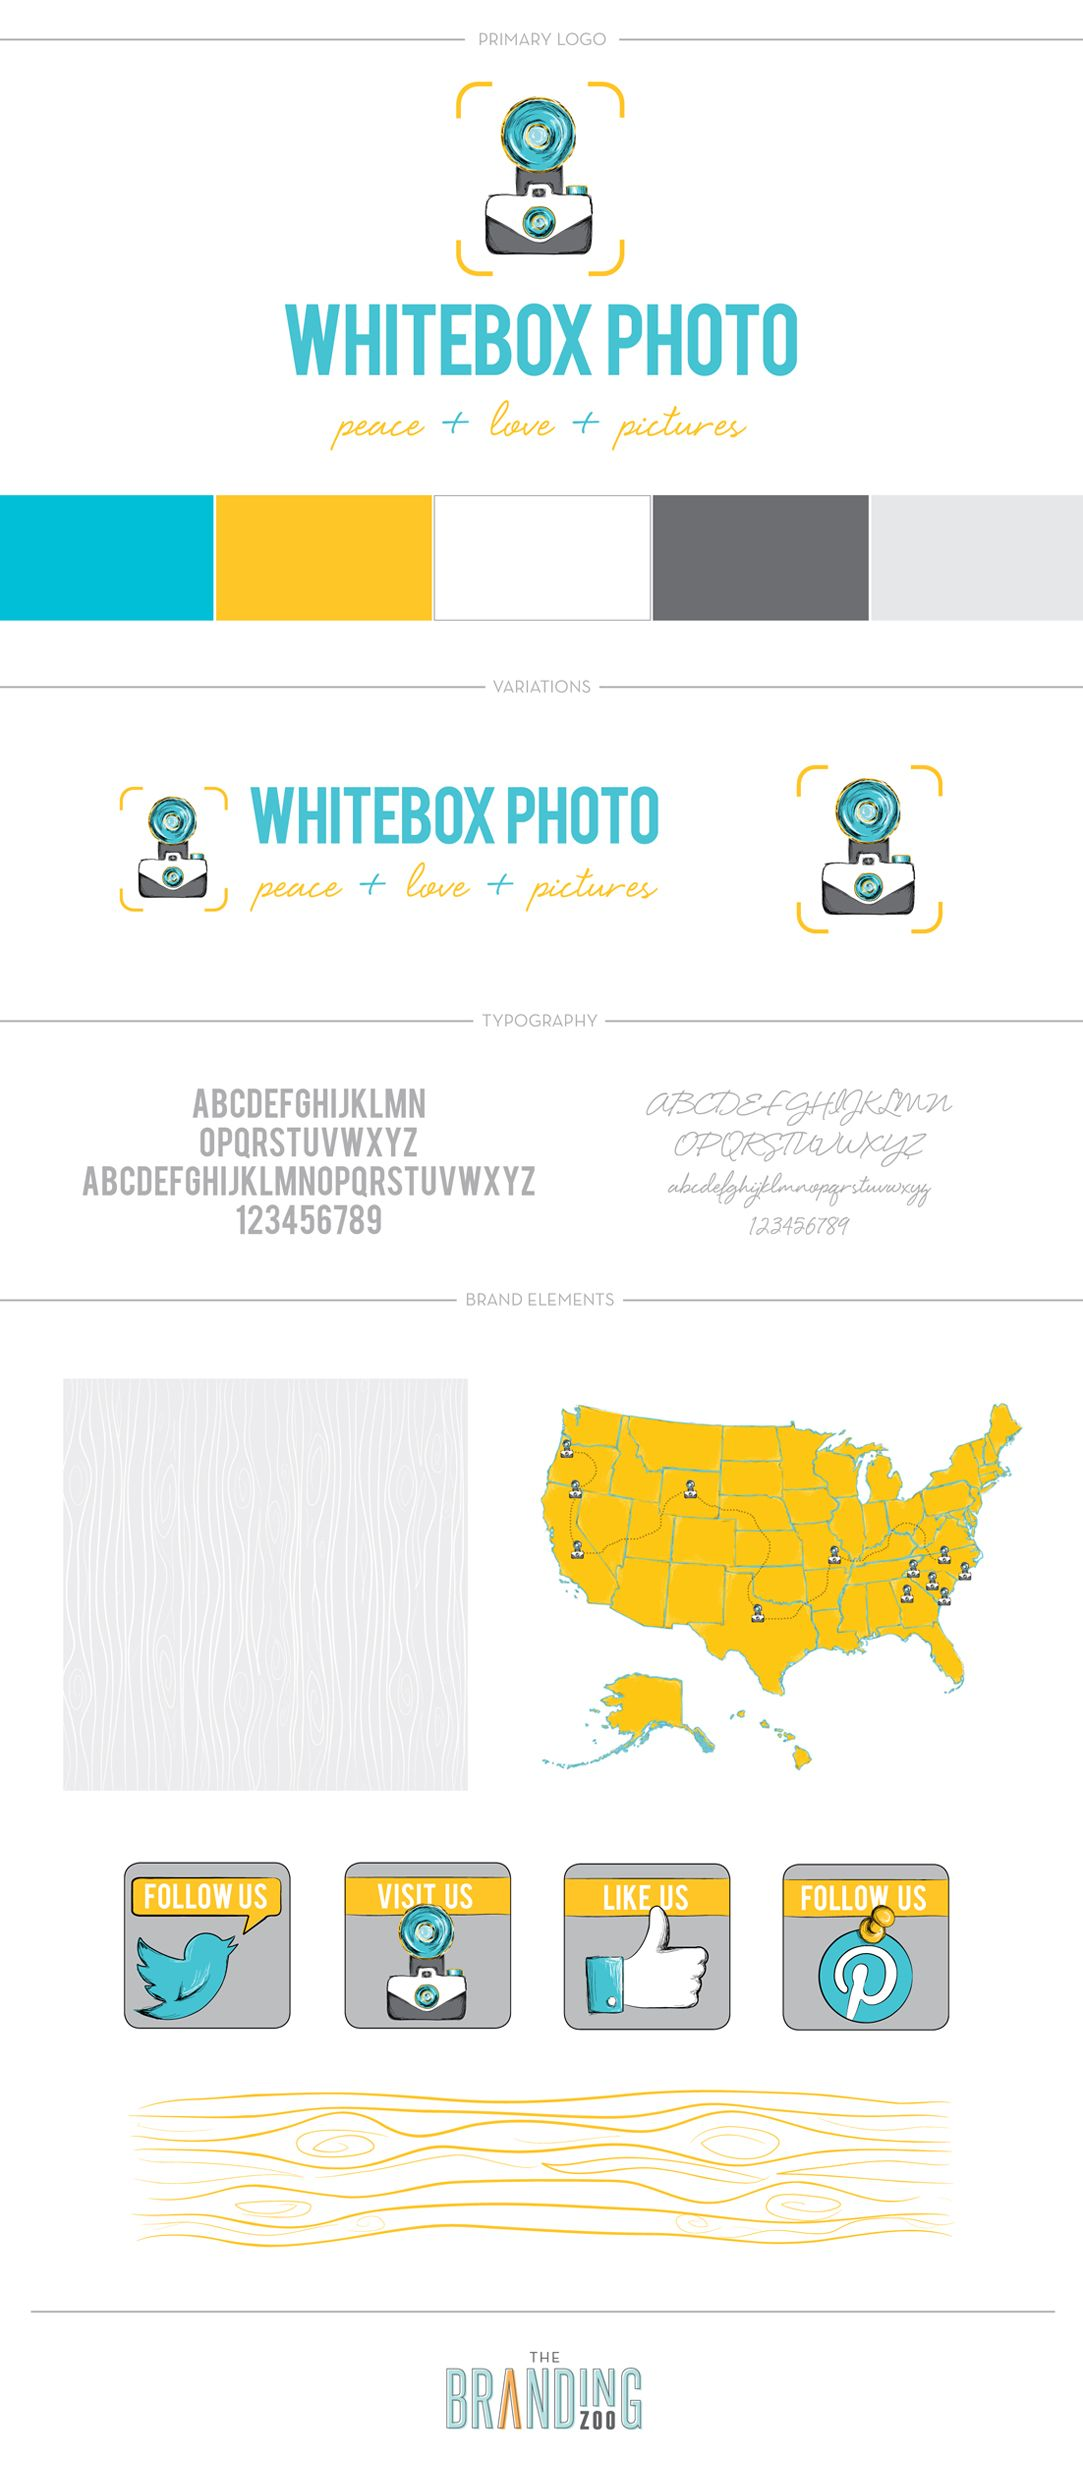 Brand Board for Whitebox Photo //  The Branding Zoo